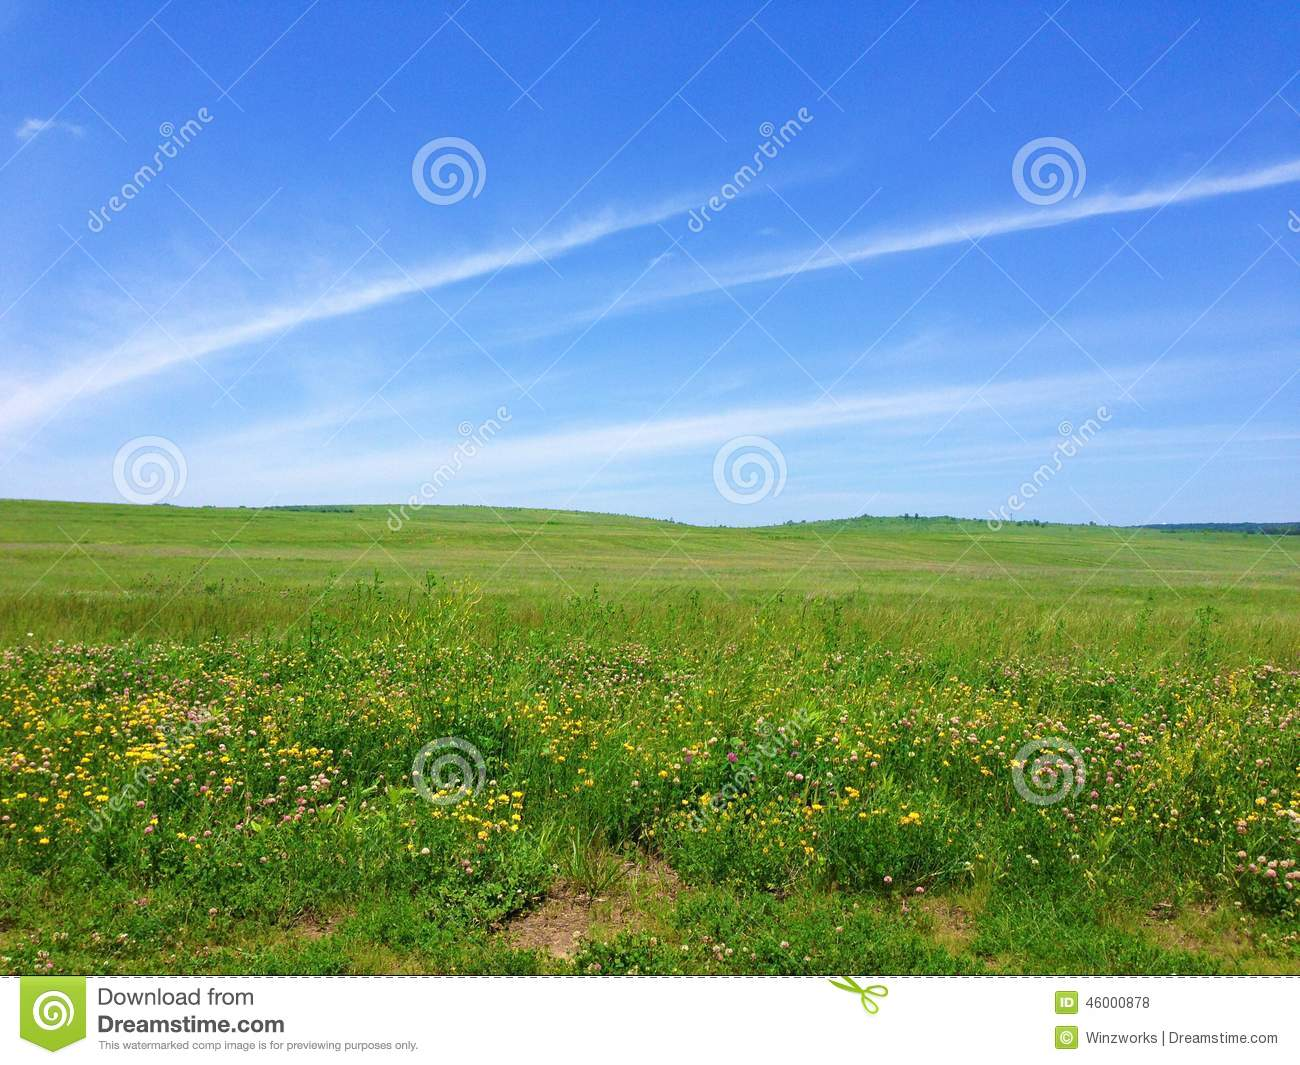 Grassy Meadow and blue sky